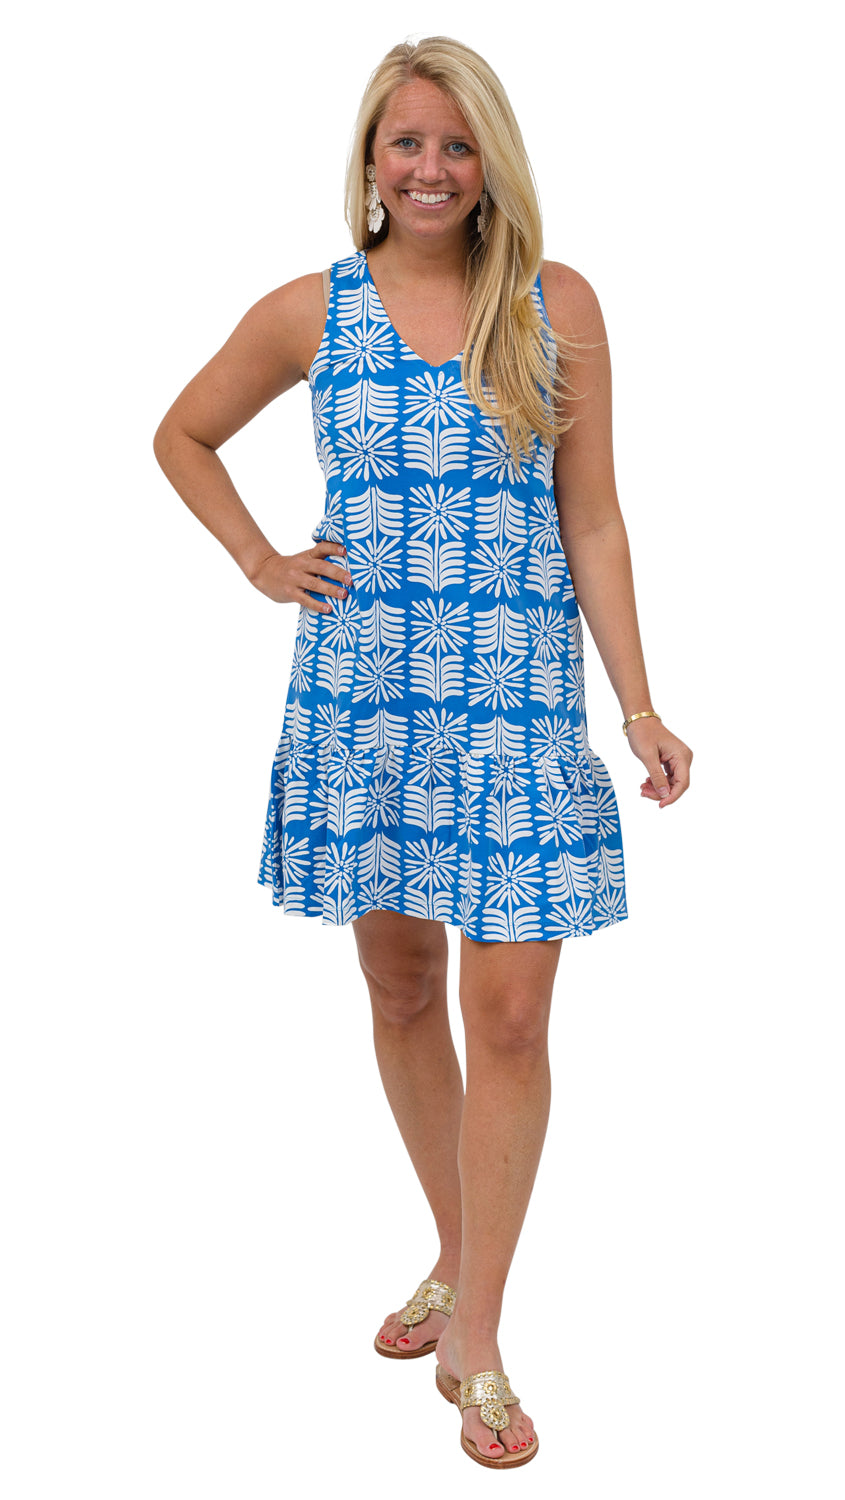 Ellie Dress - Blue/White Montauk Daisy